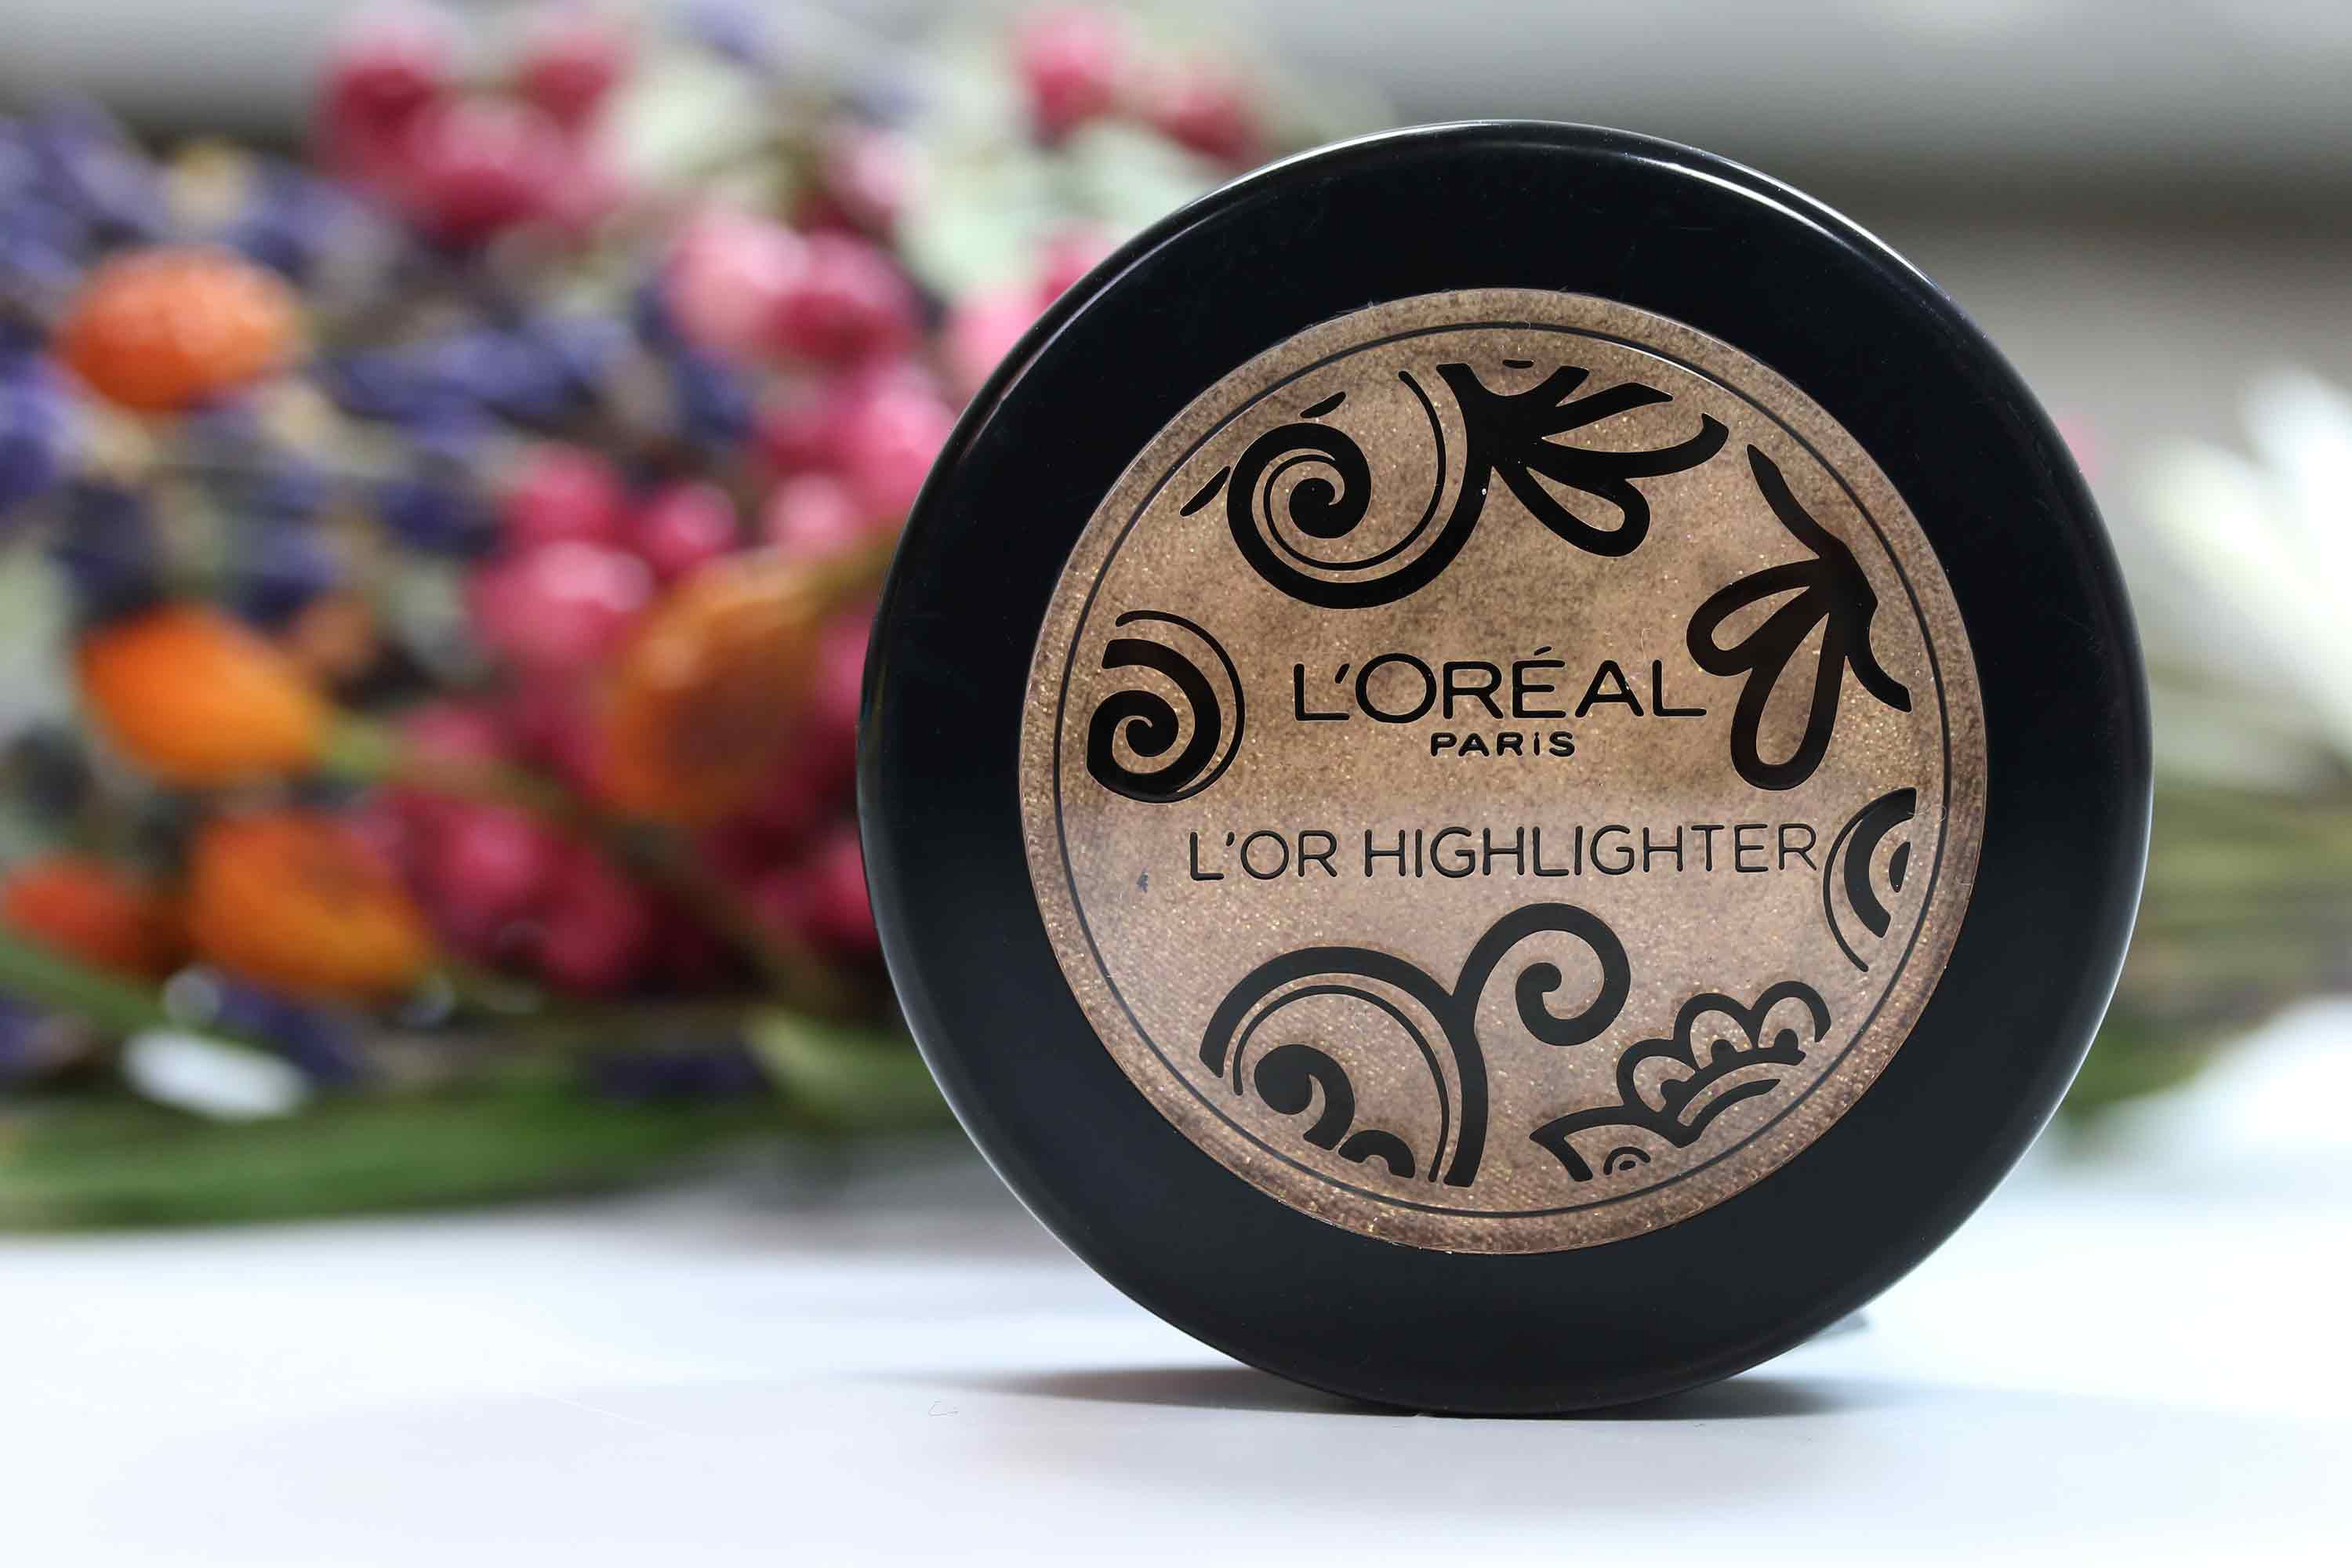 Loreal L'Or Puder Highlighter